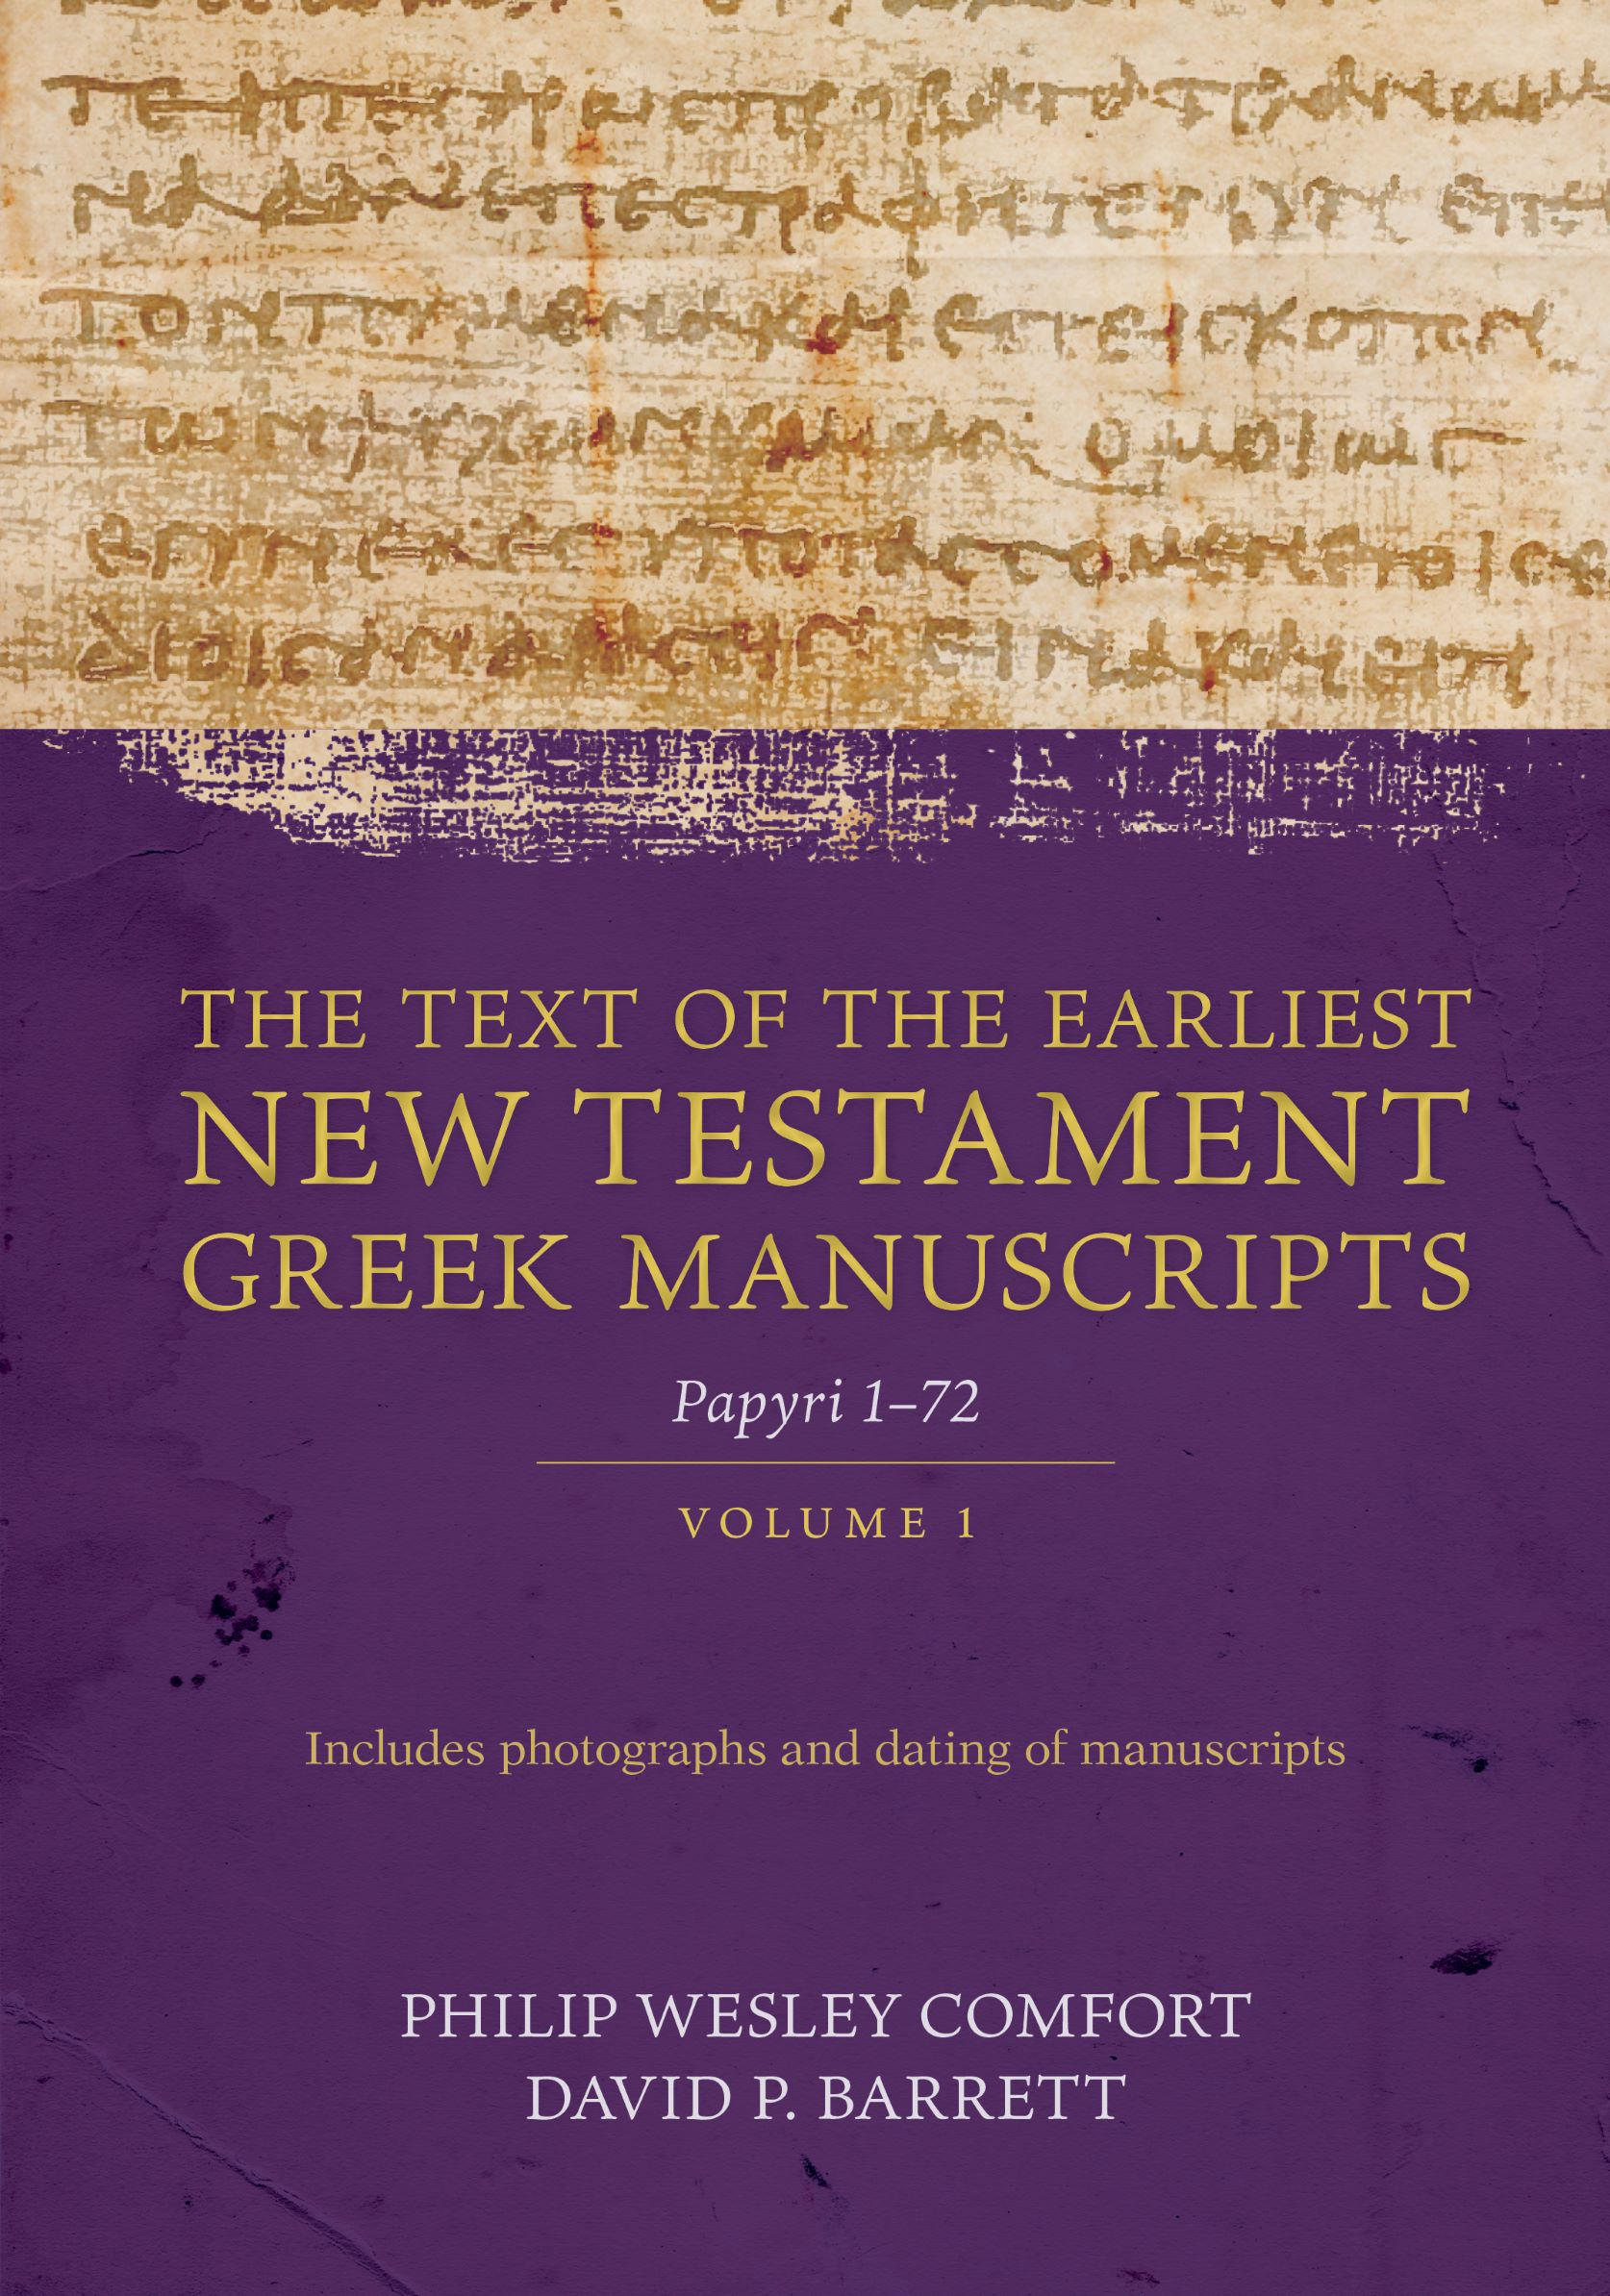 The Text of the Earliest New Testament Greek Manuscripts, Volume 1